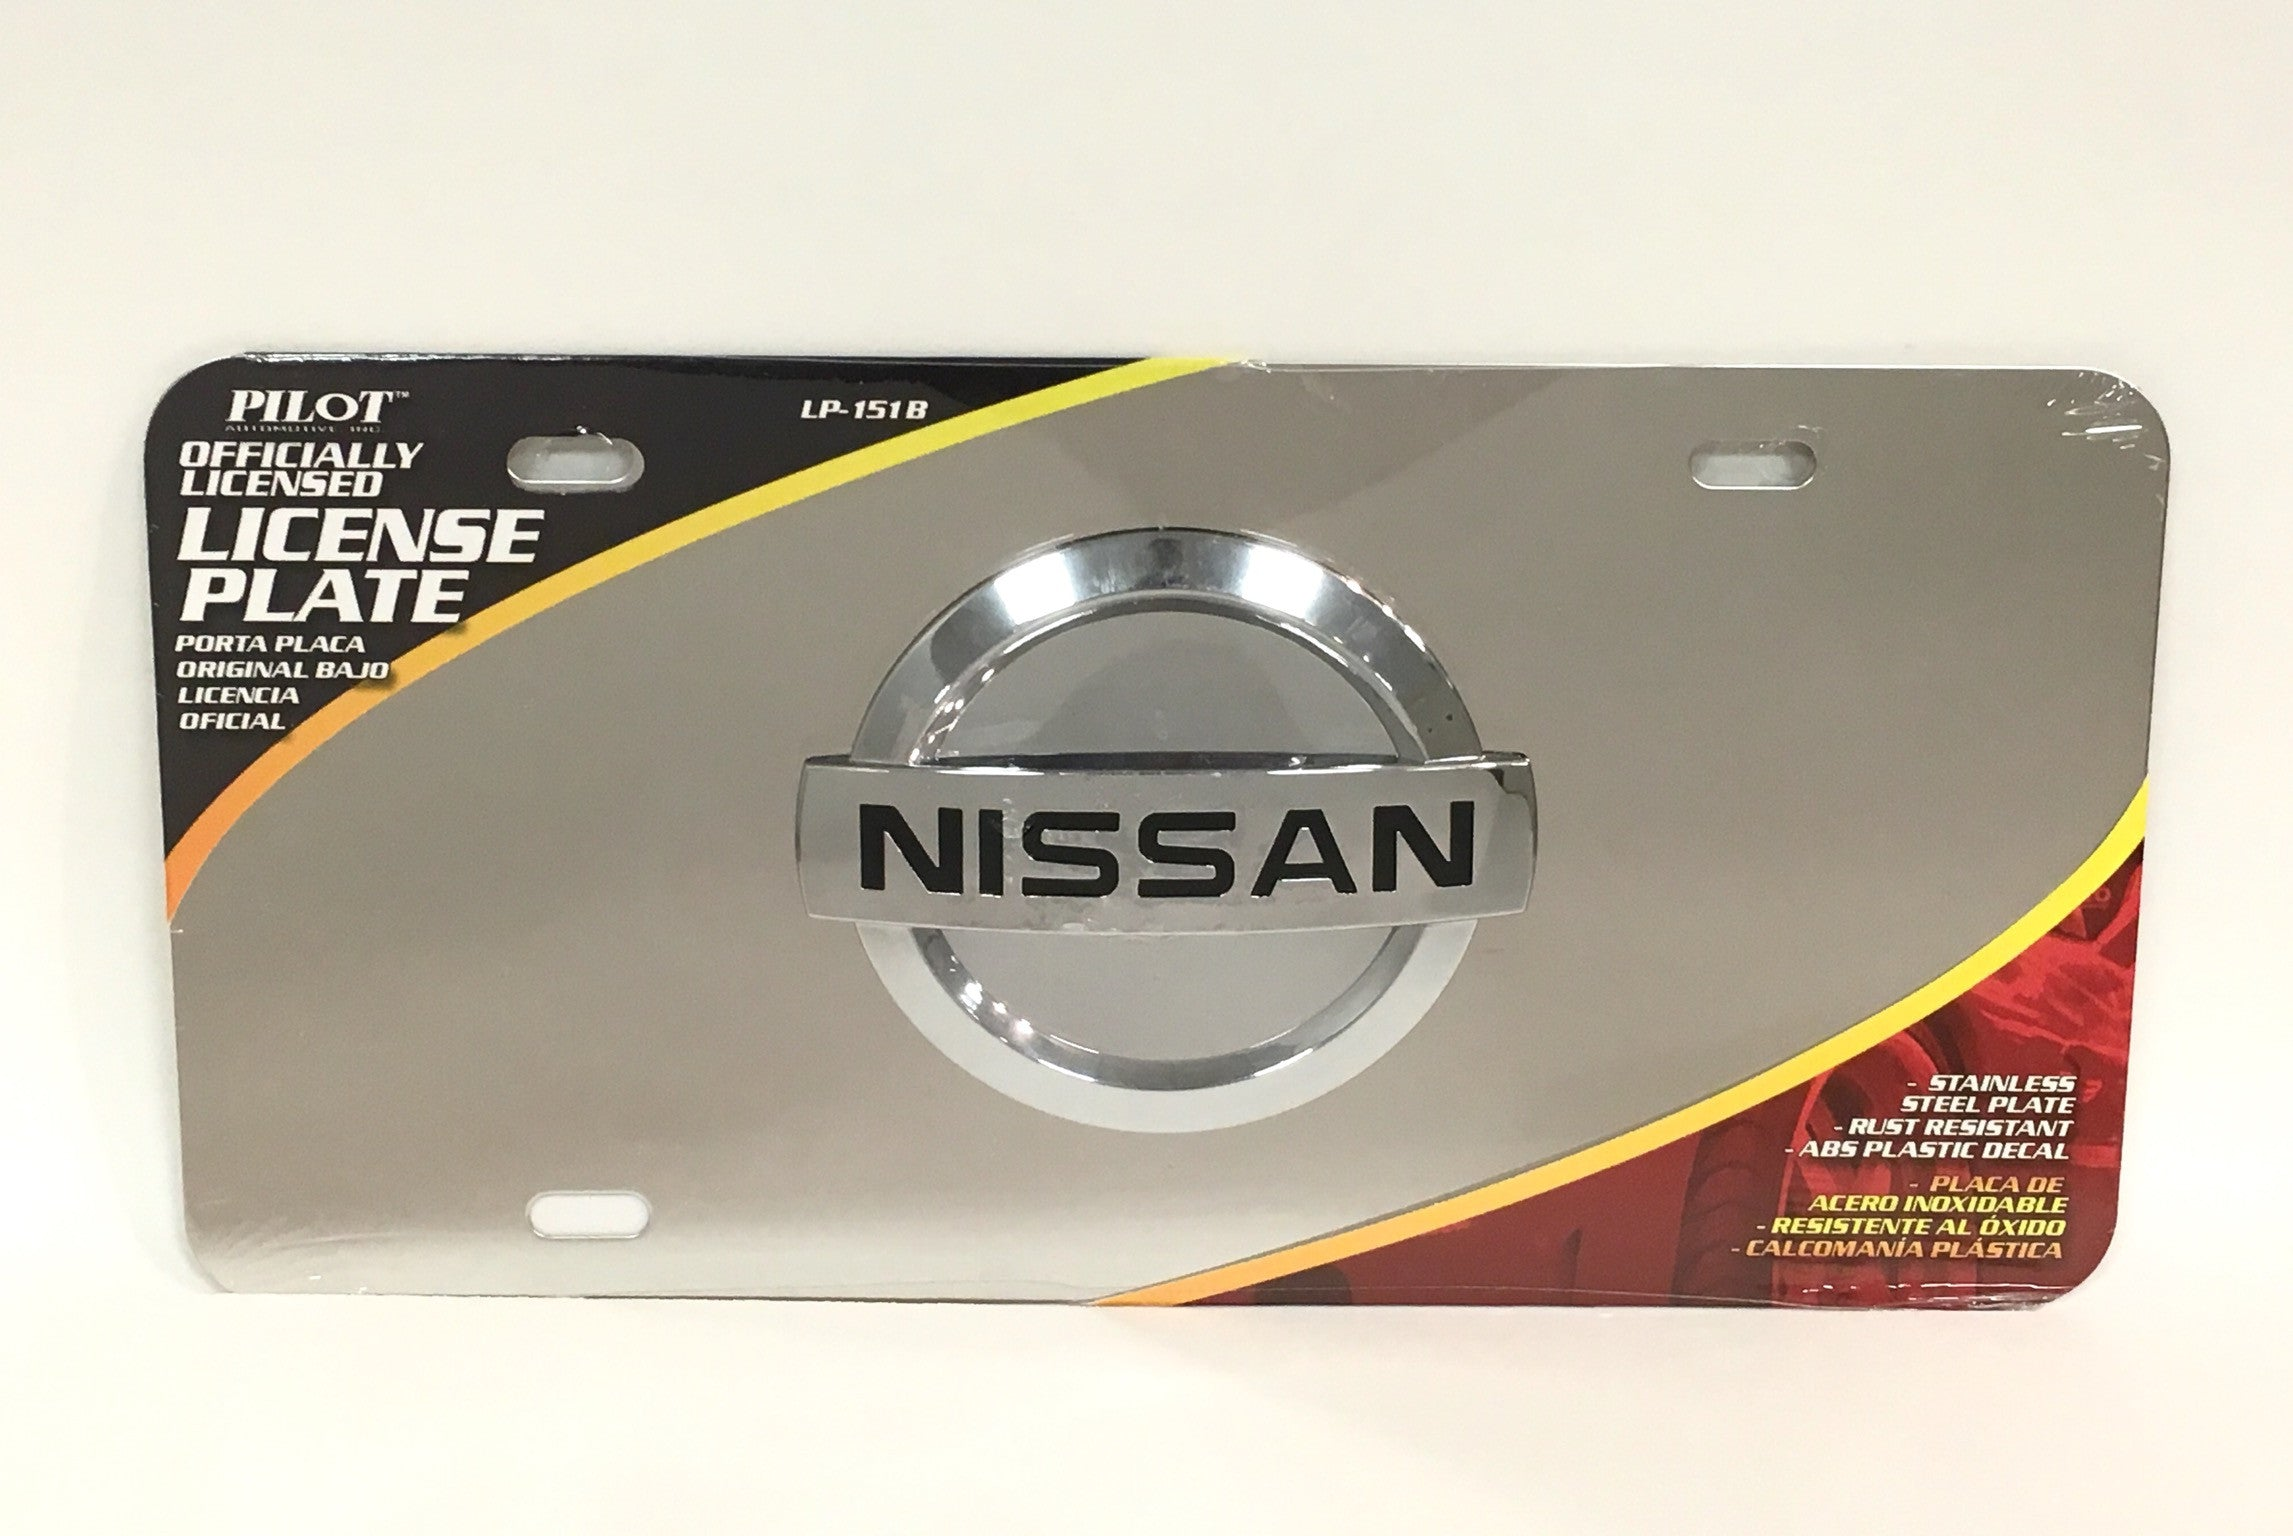 Nissan Official Emblem Stainless Steel License Plate